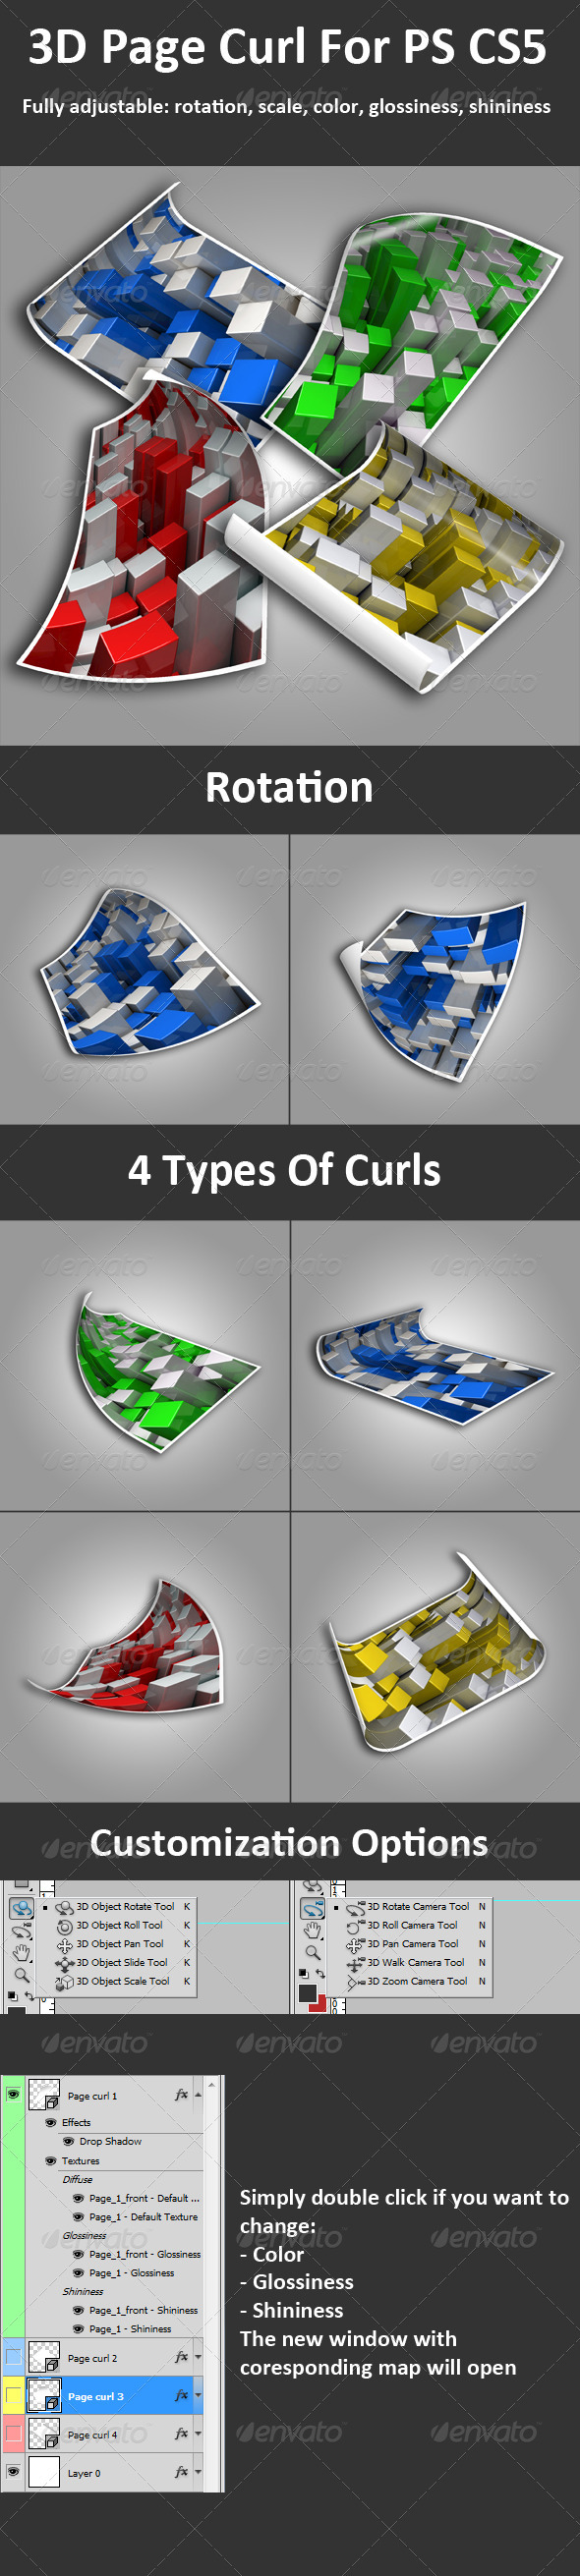 3D Page Curl For PS CS5 Full 3D Options